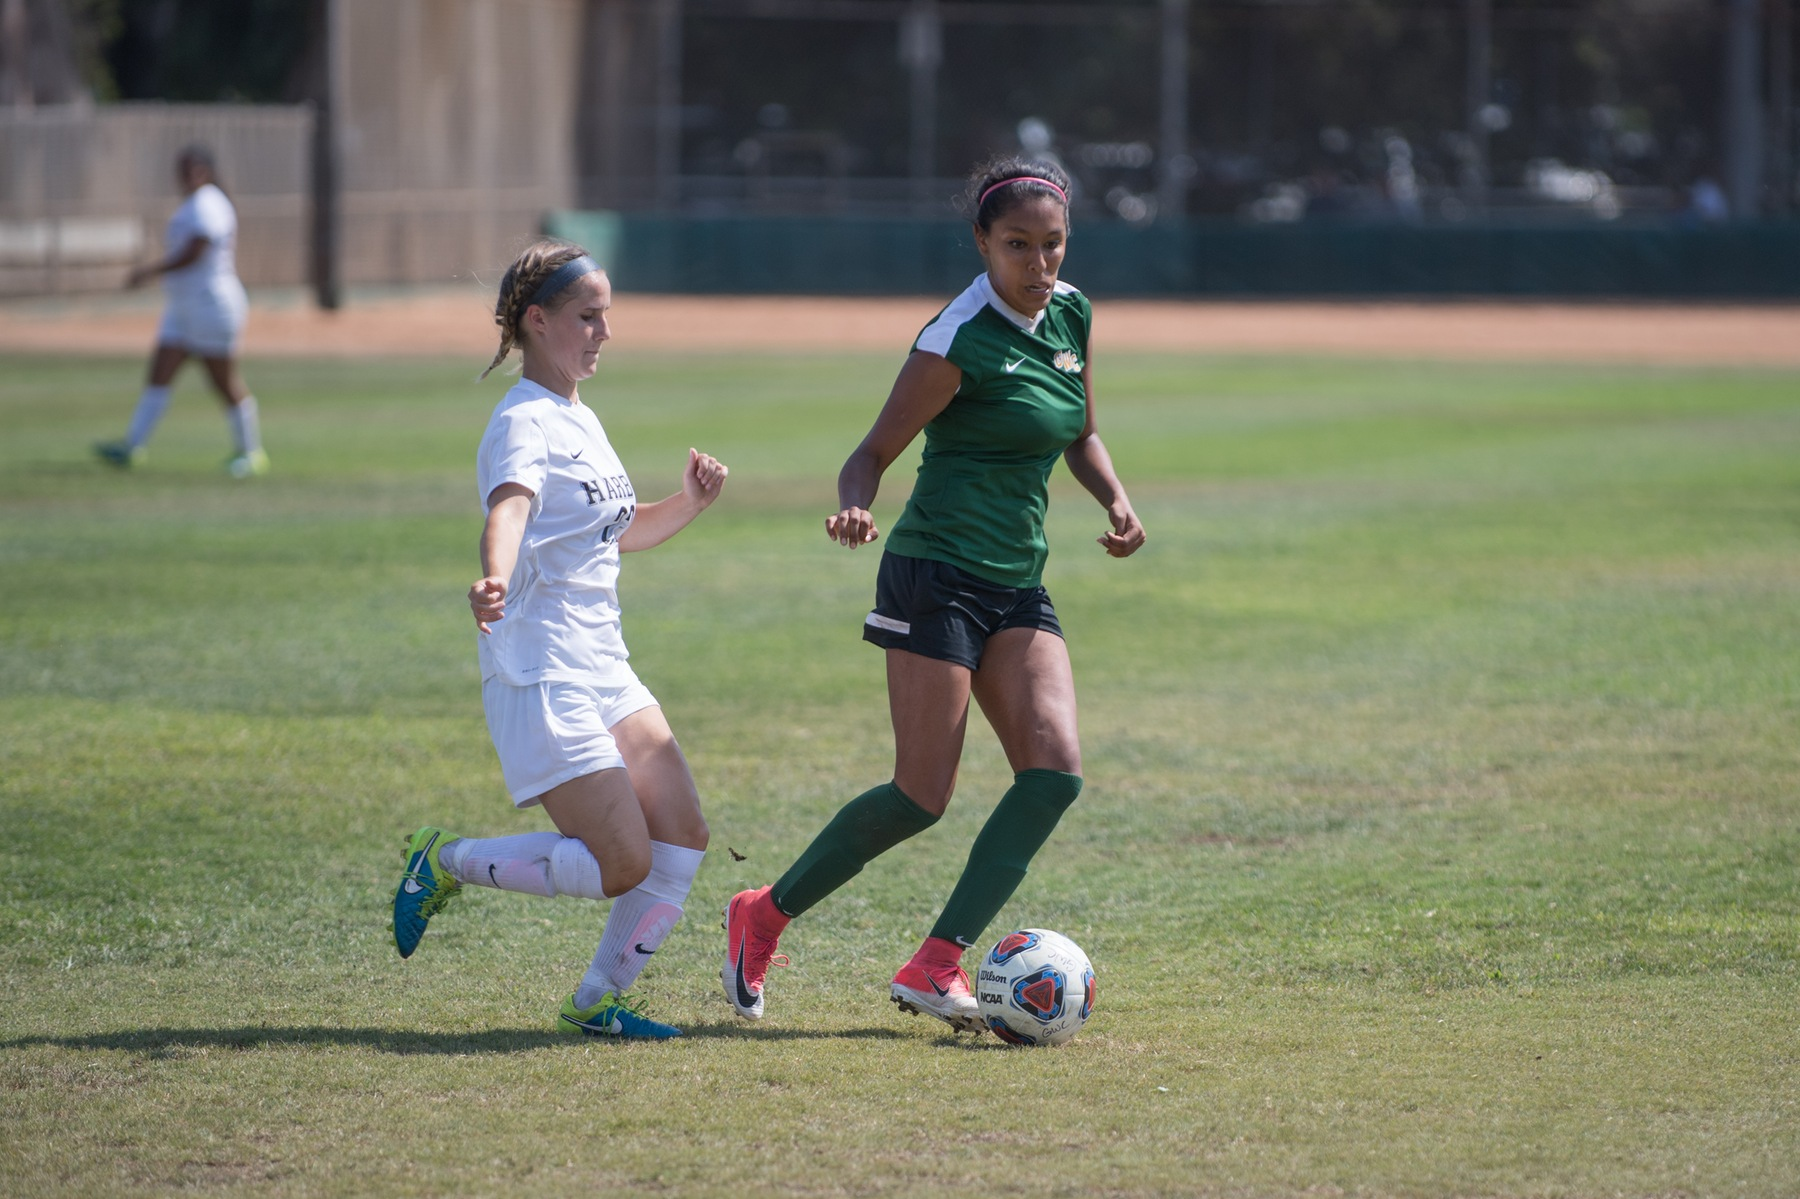 W Soccer: Offense Explodes for Five Goals in Shutout Win